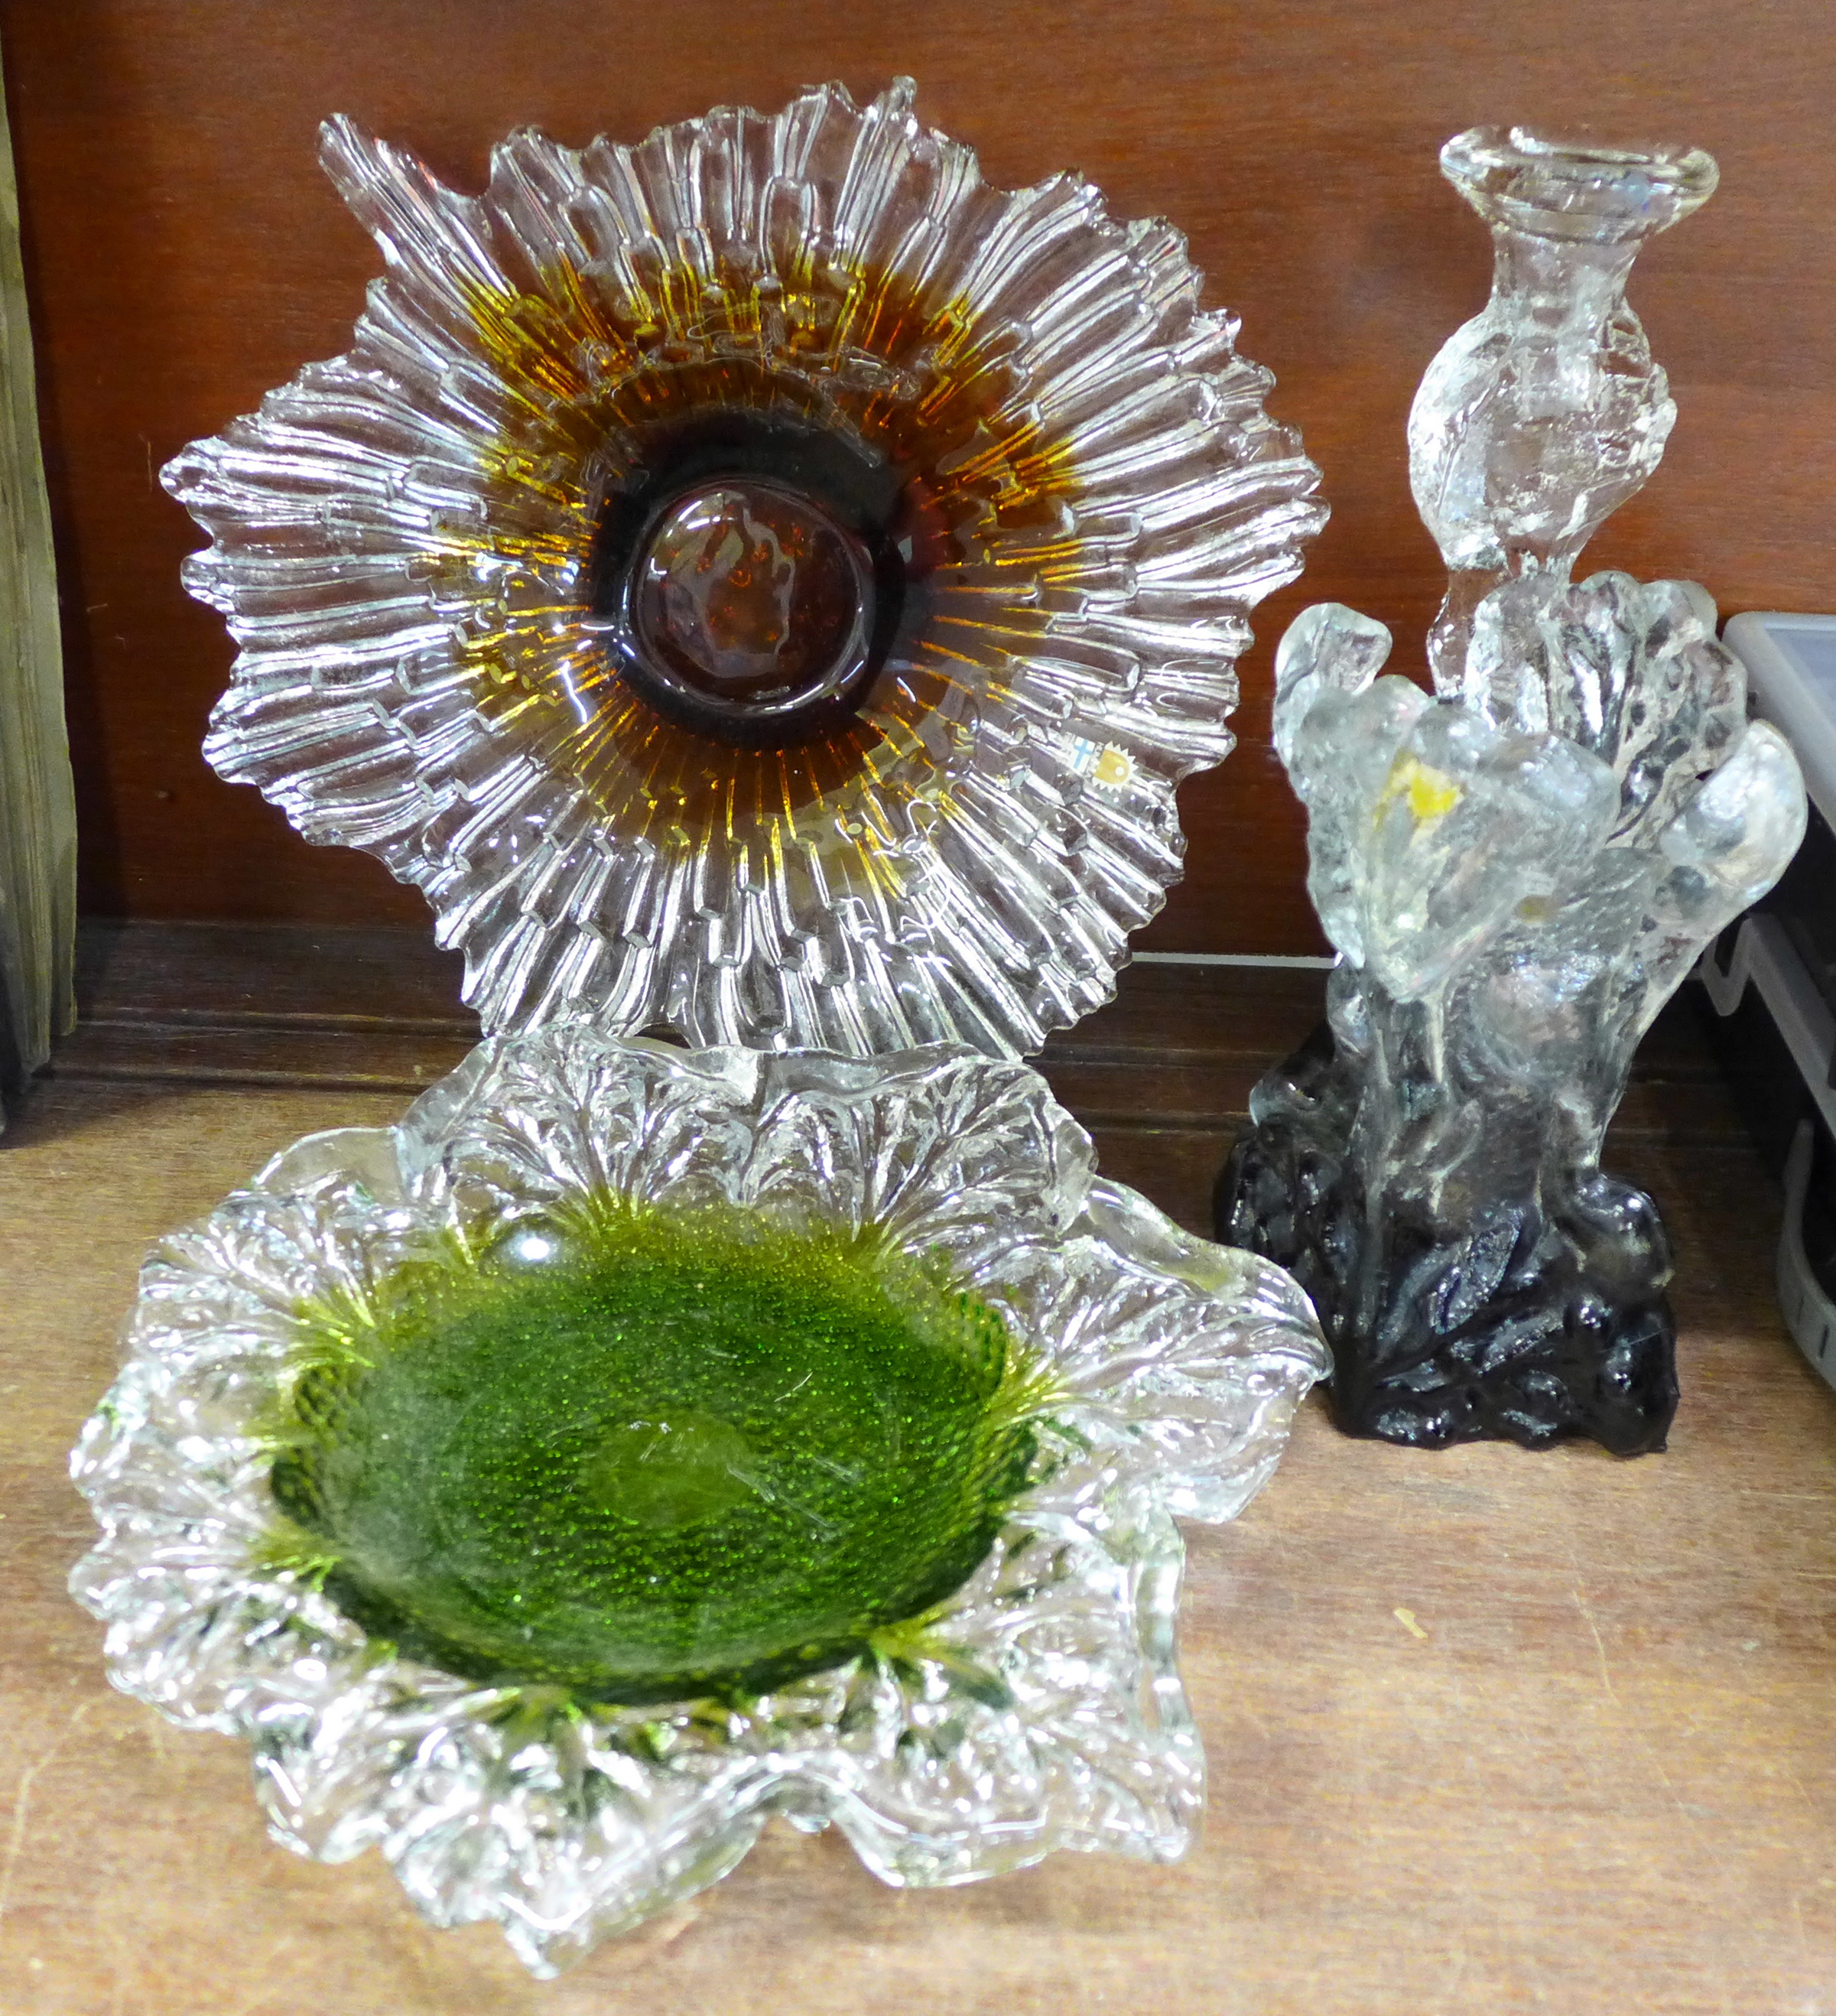 Lot 672 - A collection of Humppila Finland glass; vase, candlestick and two shallow bowls